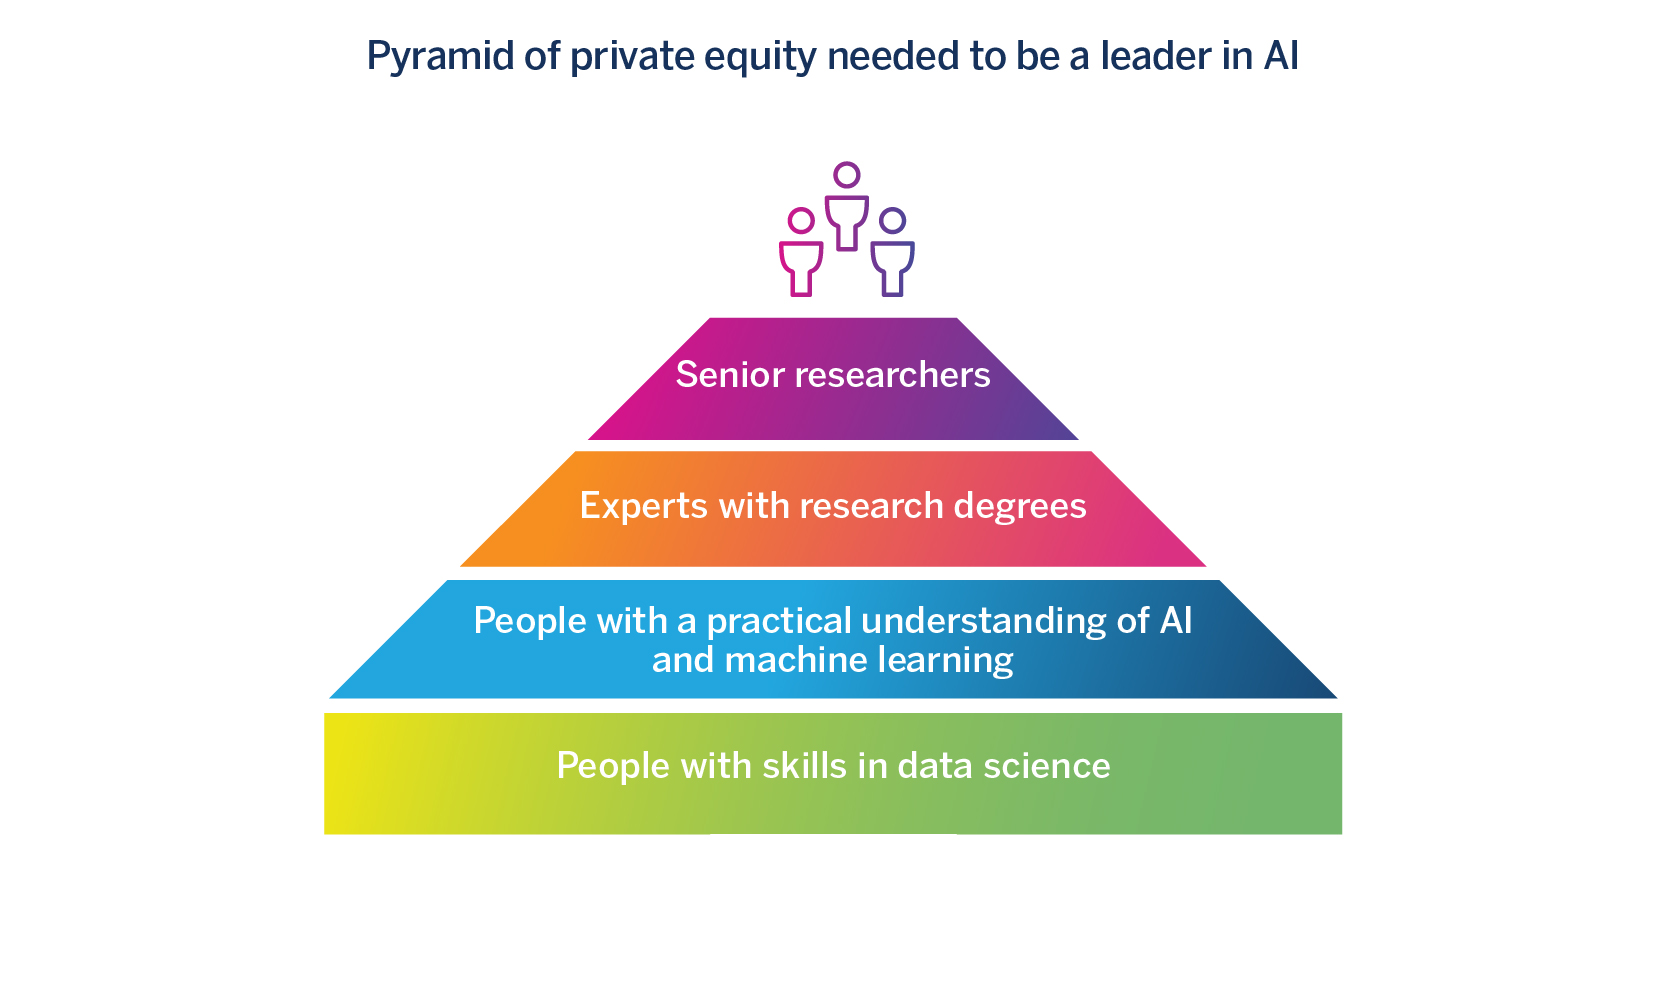 The human capital pyramid required for leadership in the field of AI